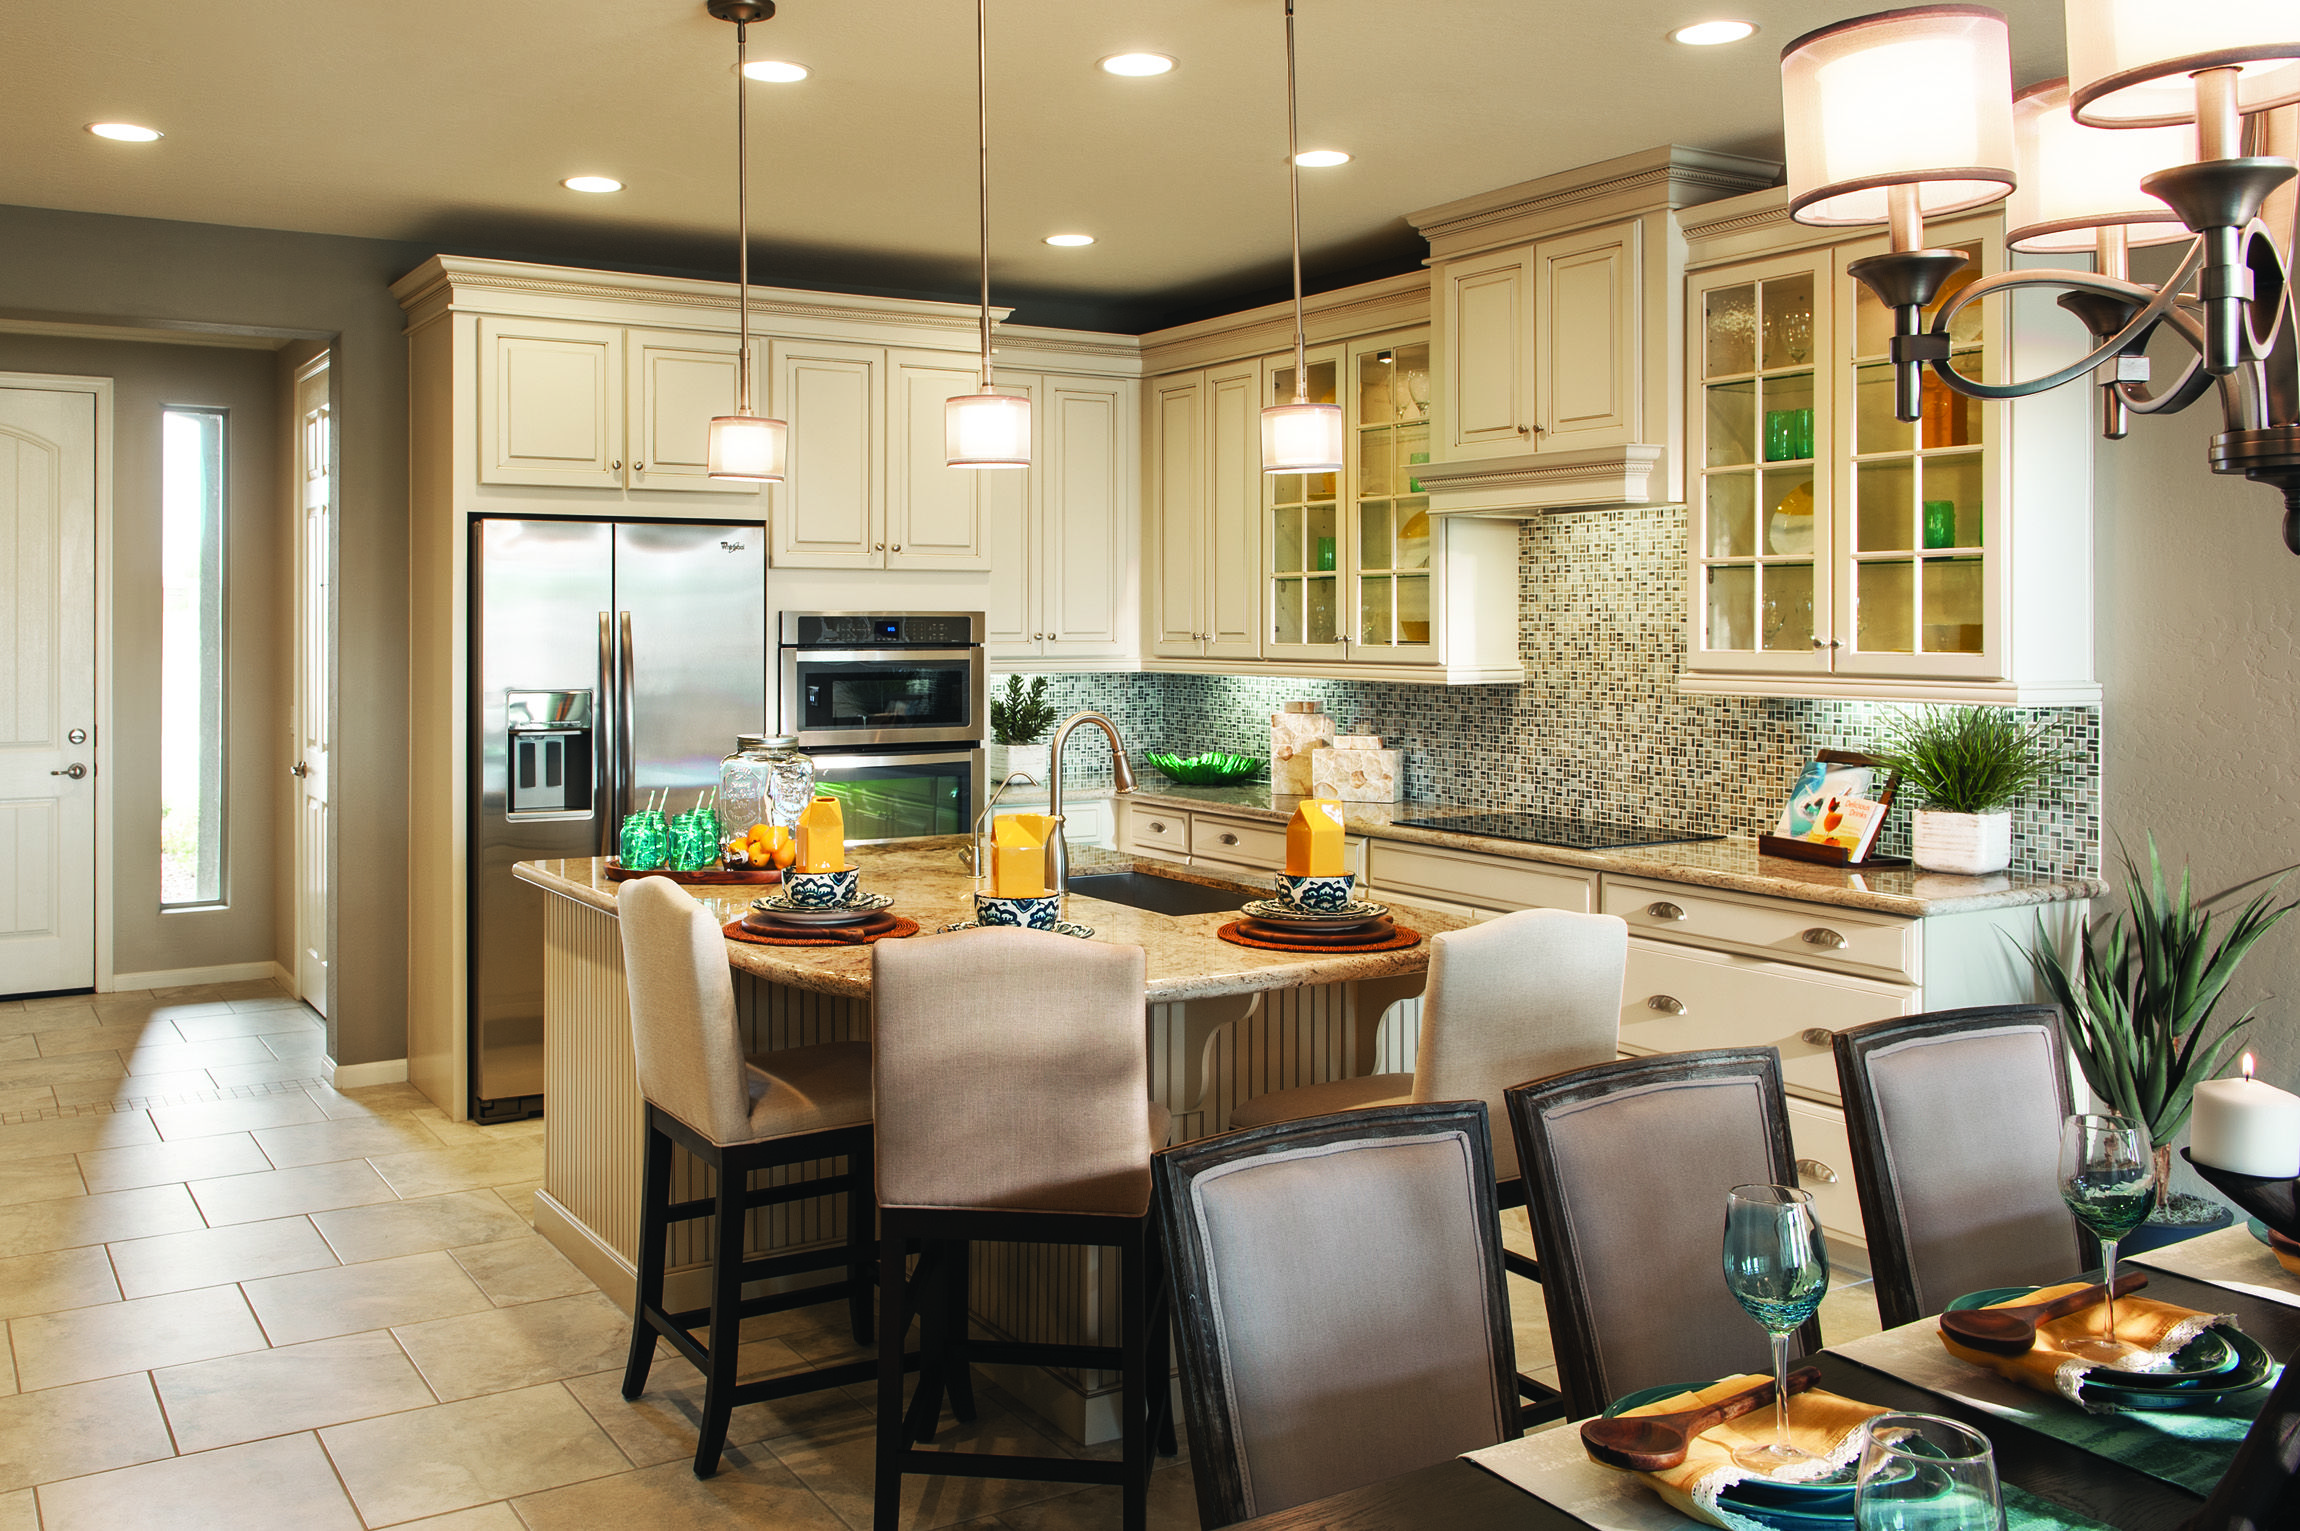 mattamys balboa model a bright and beautiful kitchen crosspointe community peoria - Mattamy Homes Design Center